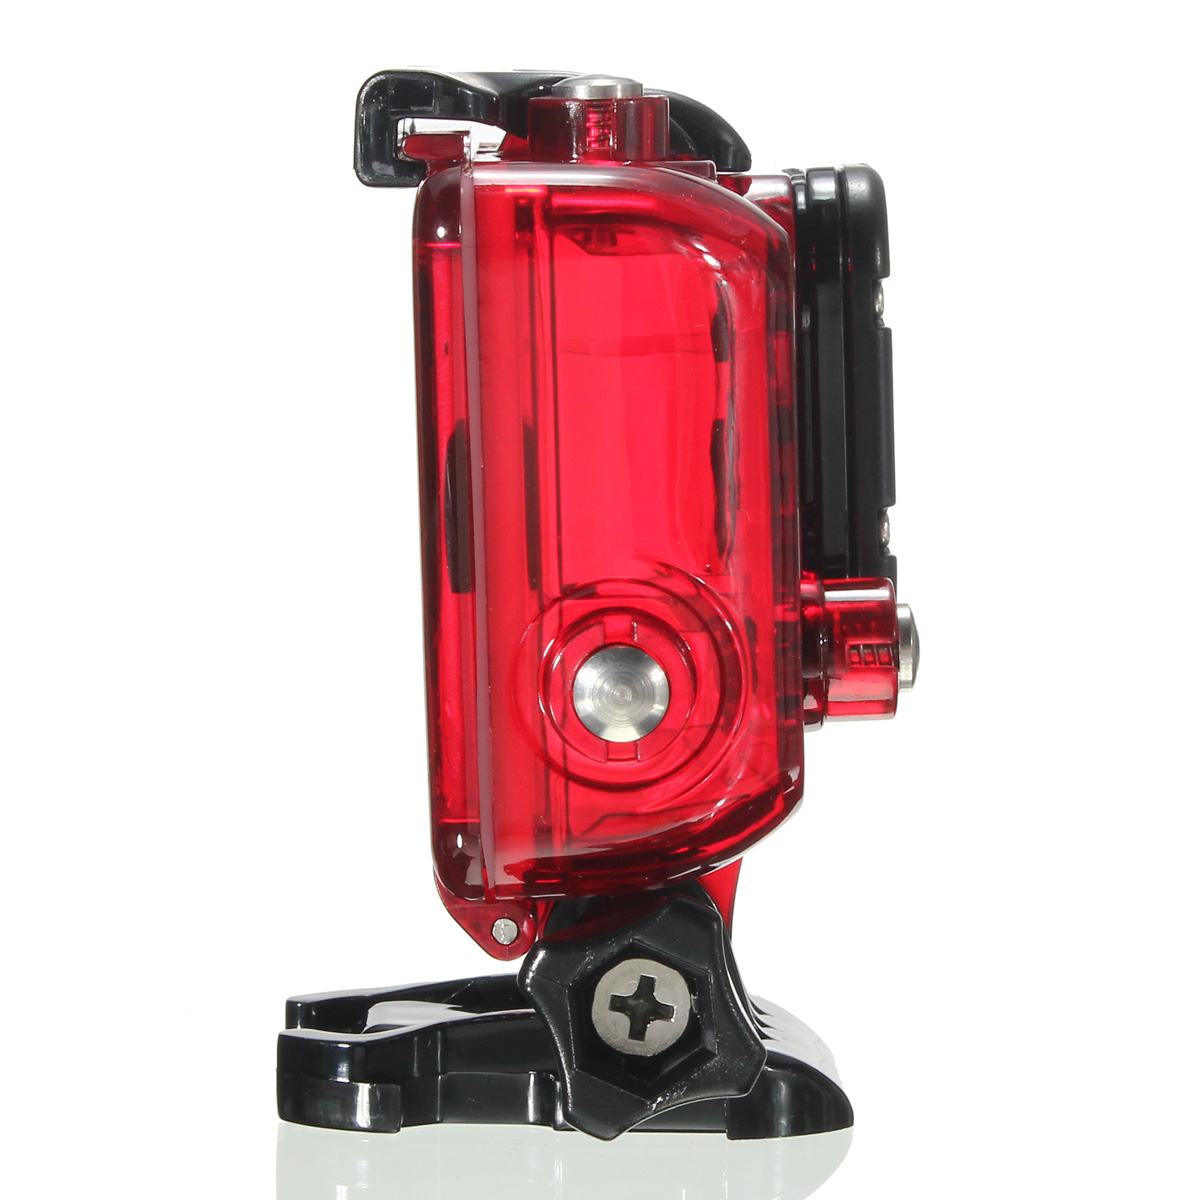 waterproof protective case for camera gopro hero 3 3 4 red lazada ph. Black Bedroom Furniture Sets. Home Design Ideas